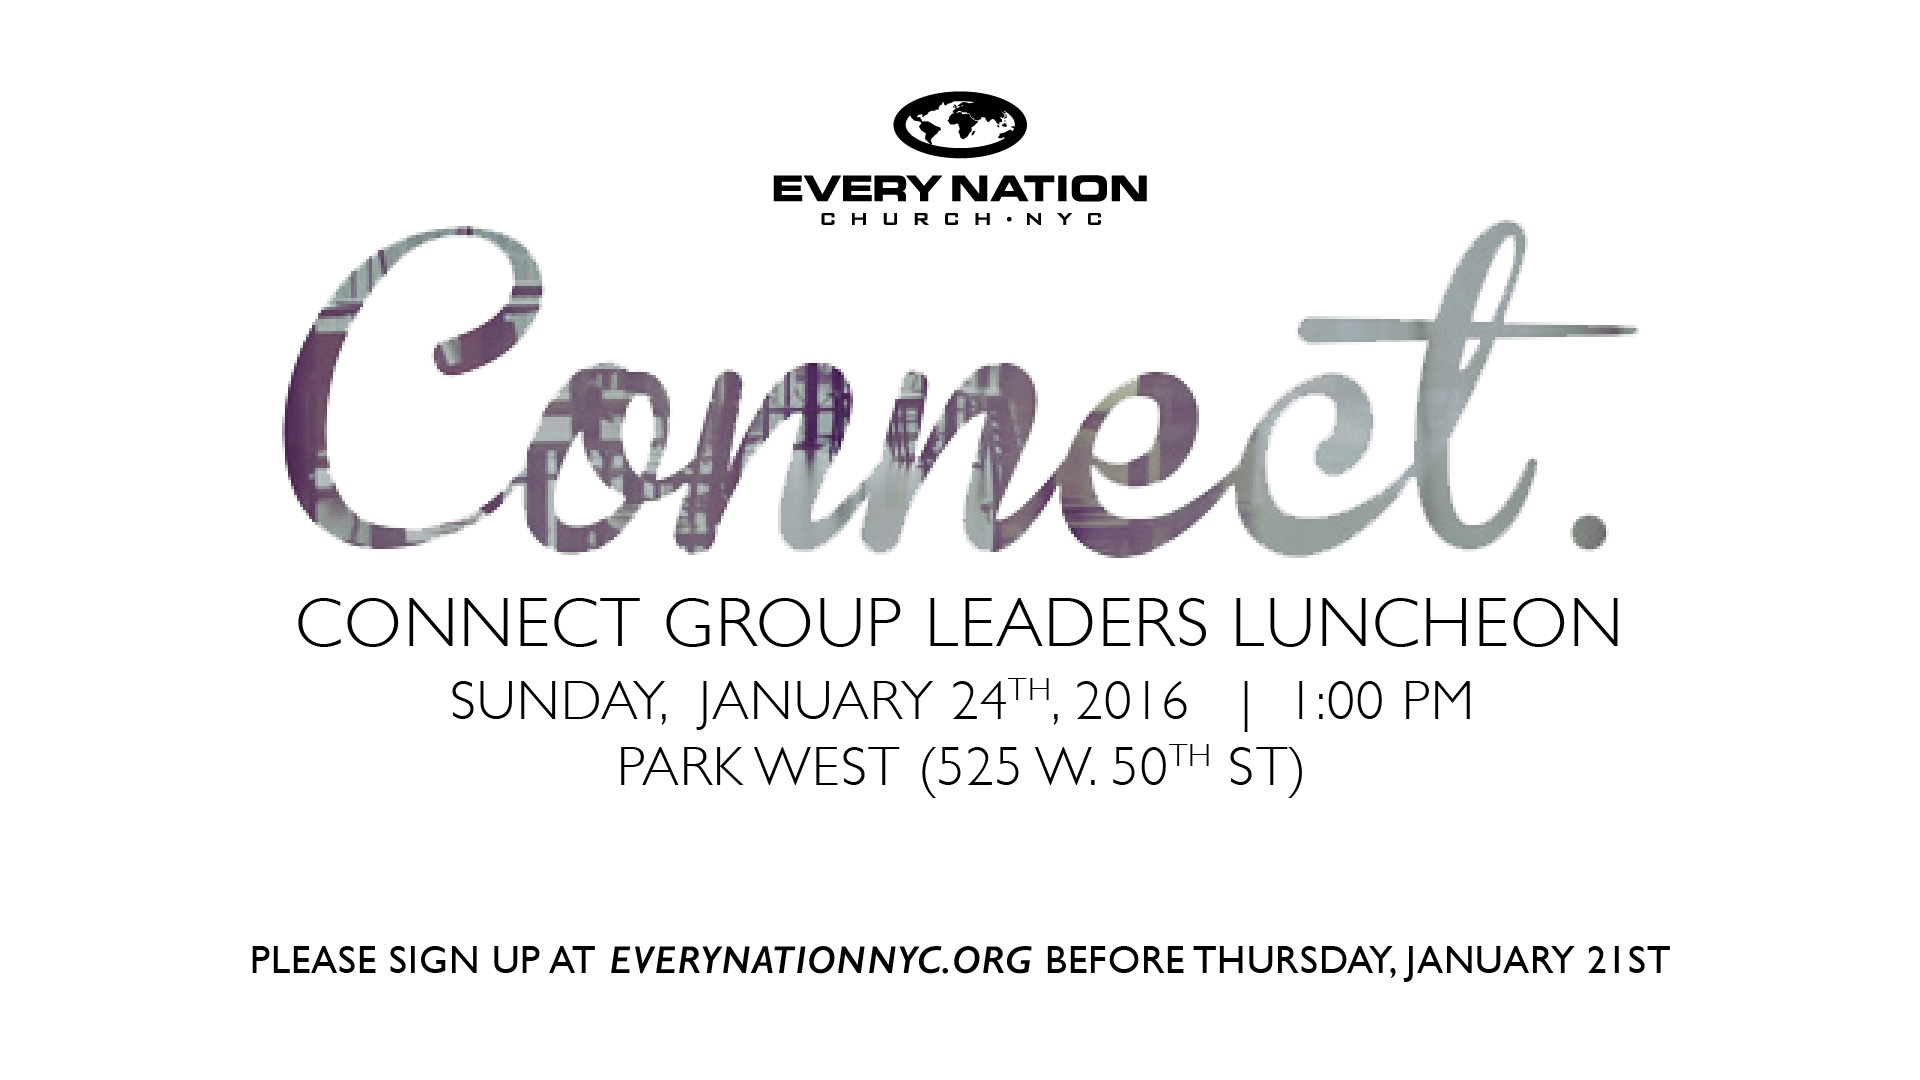 Connect Group Leaders Luncheon artwork